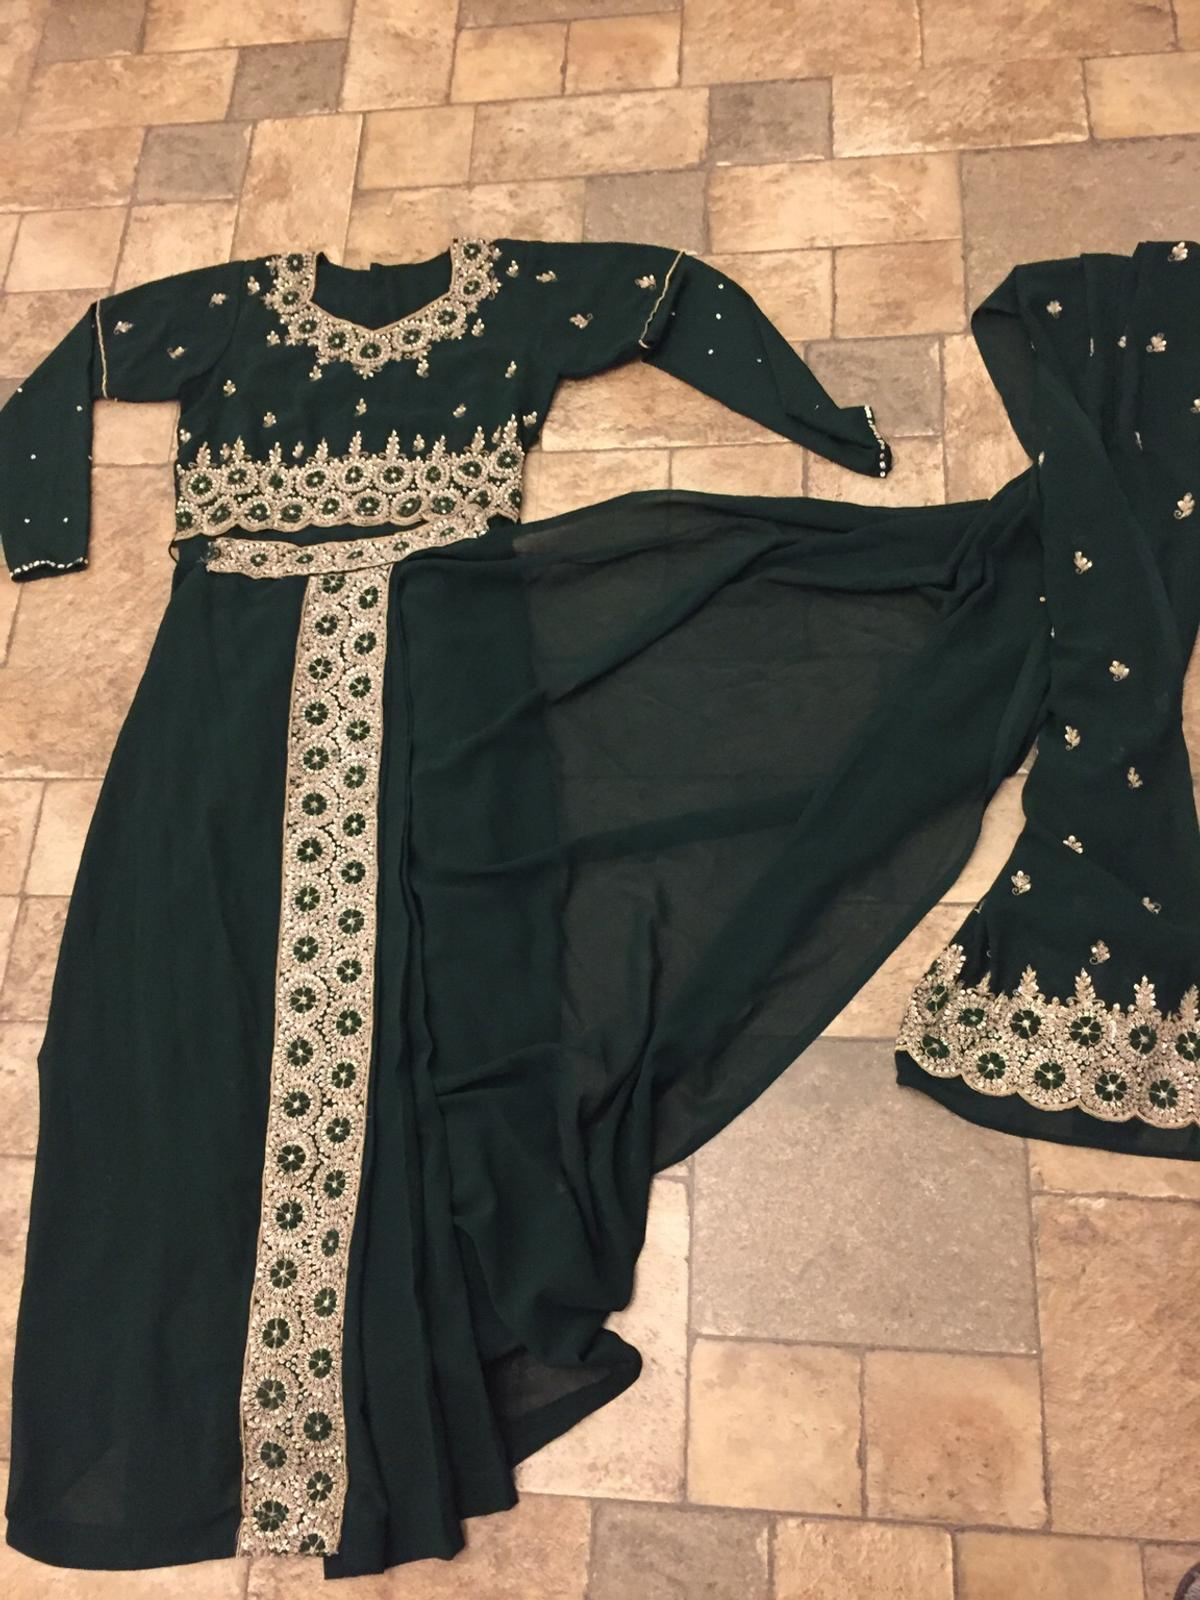 tunning Asian Indian Fancy Sari  Full sleeves blouse  Size medium  measurements:  sari length: 39 inches Approx  blouse length: 24 inches Approx  chest : 36 inches Approx ( front and back)  sleeves: 28 inches Approx  Only used twice. In excellent condition